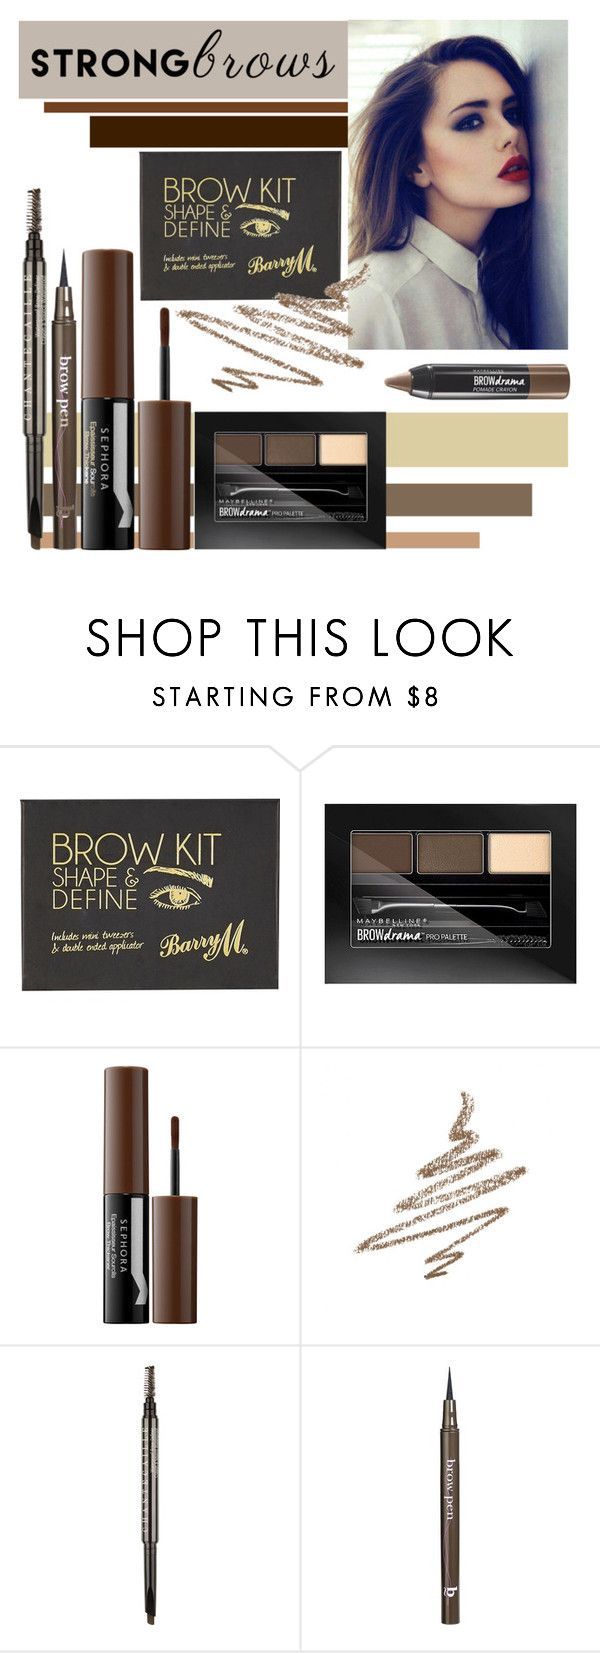 """Raise Your Brows"" by lauren-intan ❤ liked on Polyvore featuring beauty, River Island, Maybelline, Sephora Collection, Anastasia Beverly Hills, Chantecaille, BBrowBar, BeautyTrend, strongbrows and boldeyebrows"